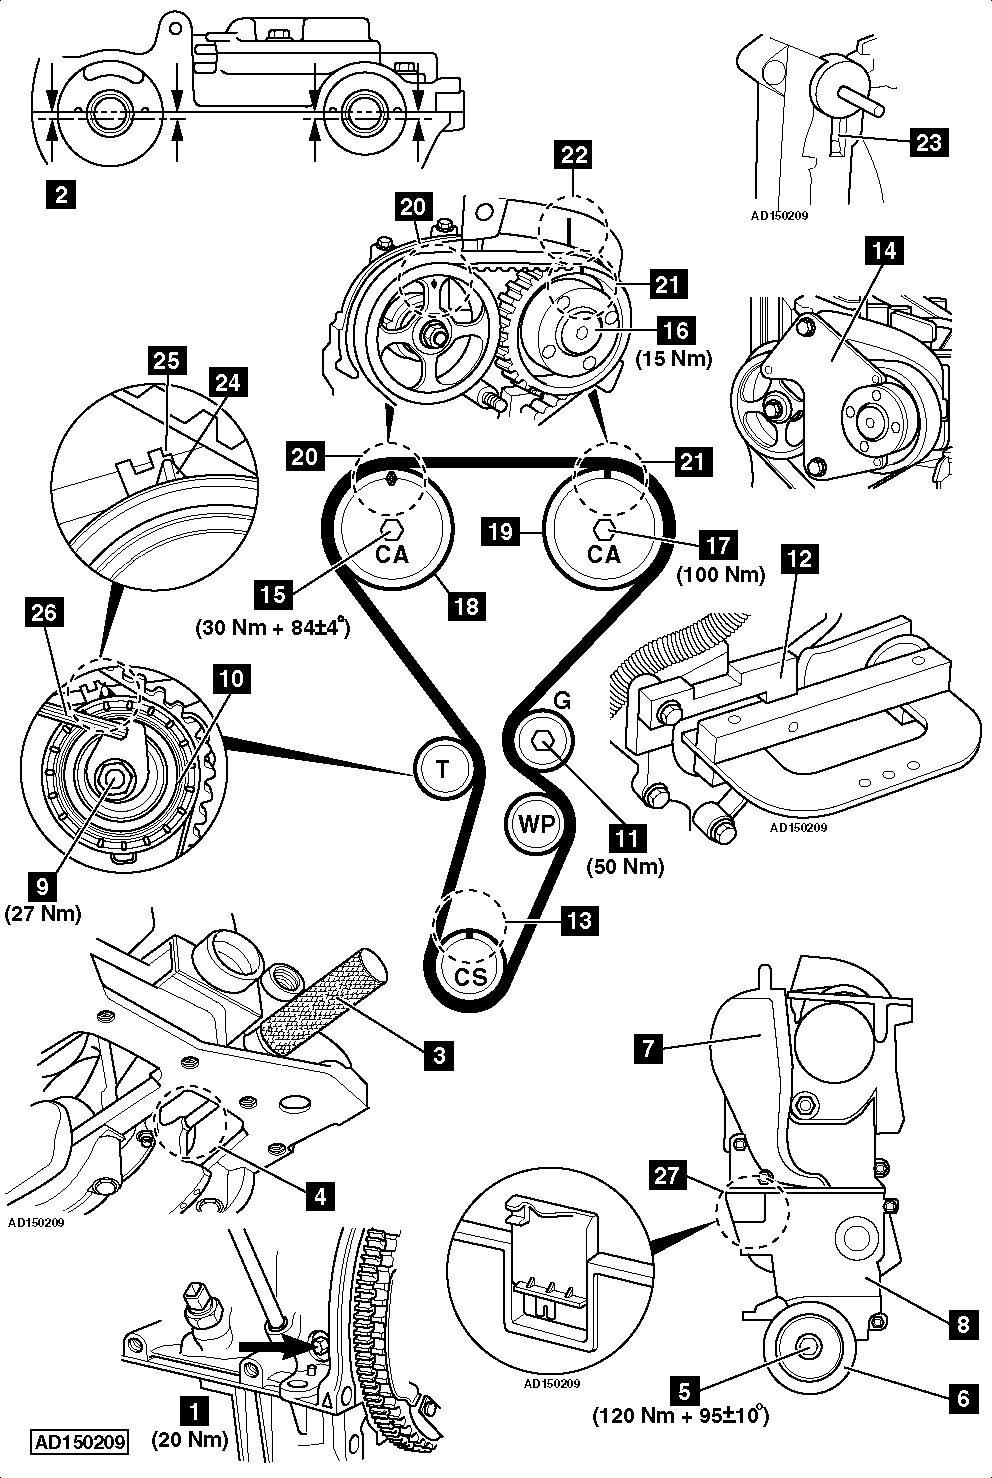 90446 95 K2500 Glow Plug Relay Wiring as well ments besides Can Anyone Help With The Wiring For Dual Tanks moreover 2002 Toyota Camry Vacuum Diagram Wiring Diagrams additionally 3 1l Engine Diagram Sensor. on 96 chevy wiring diagram